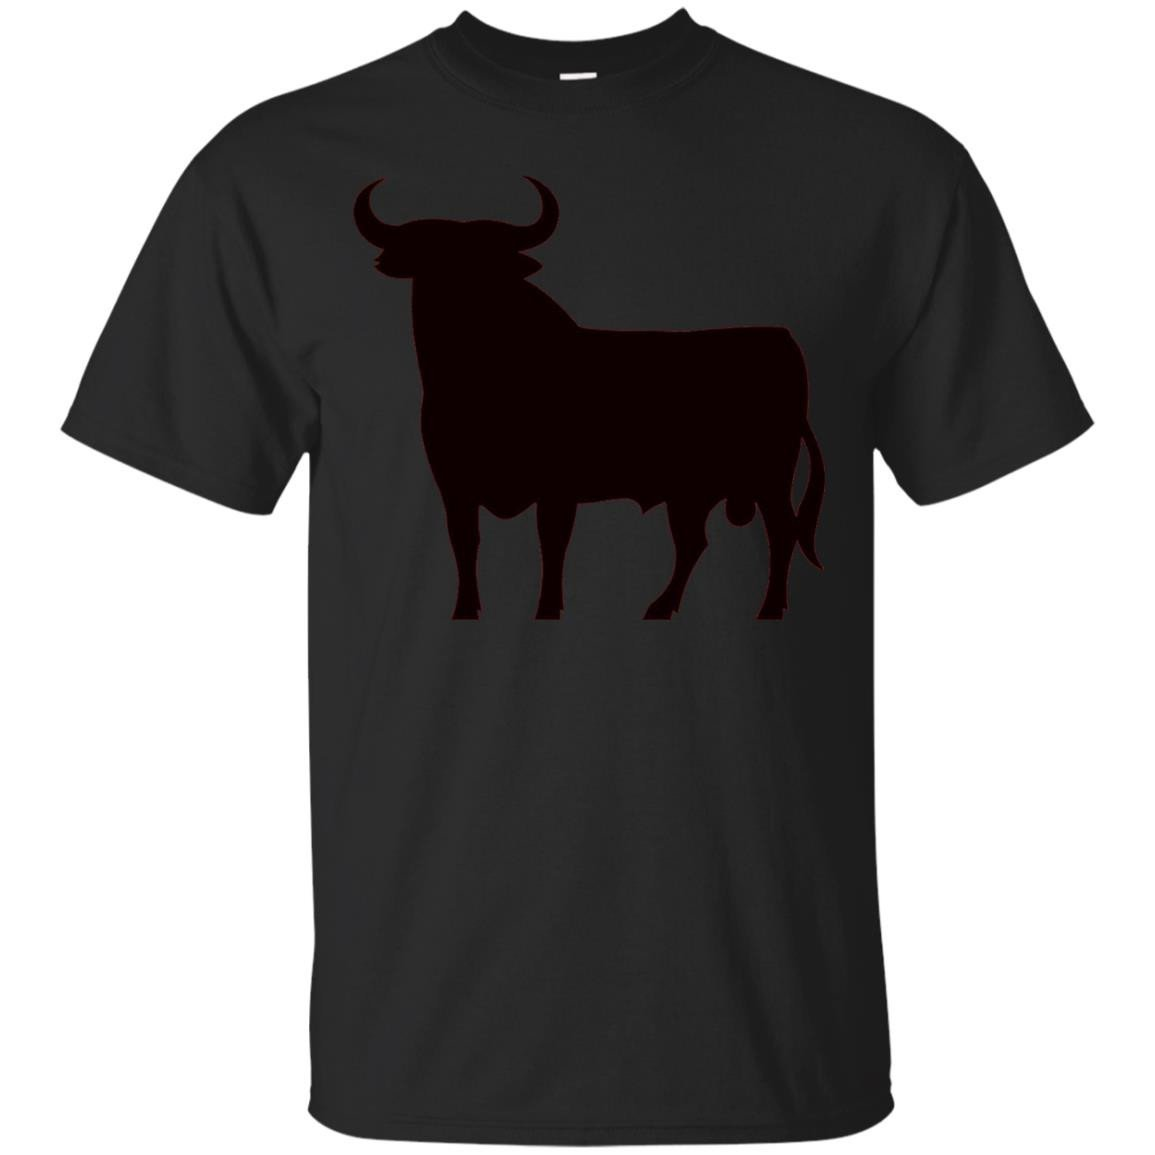 EL TORO DE OSBORNE – spain – spanish – bull – icon T-Shirt